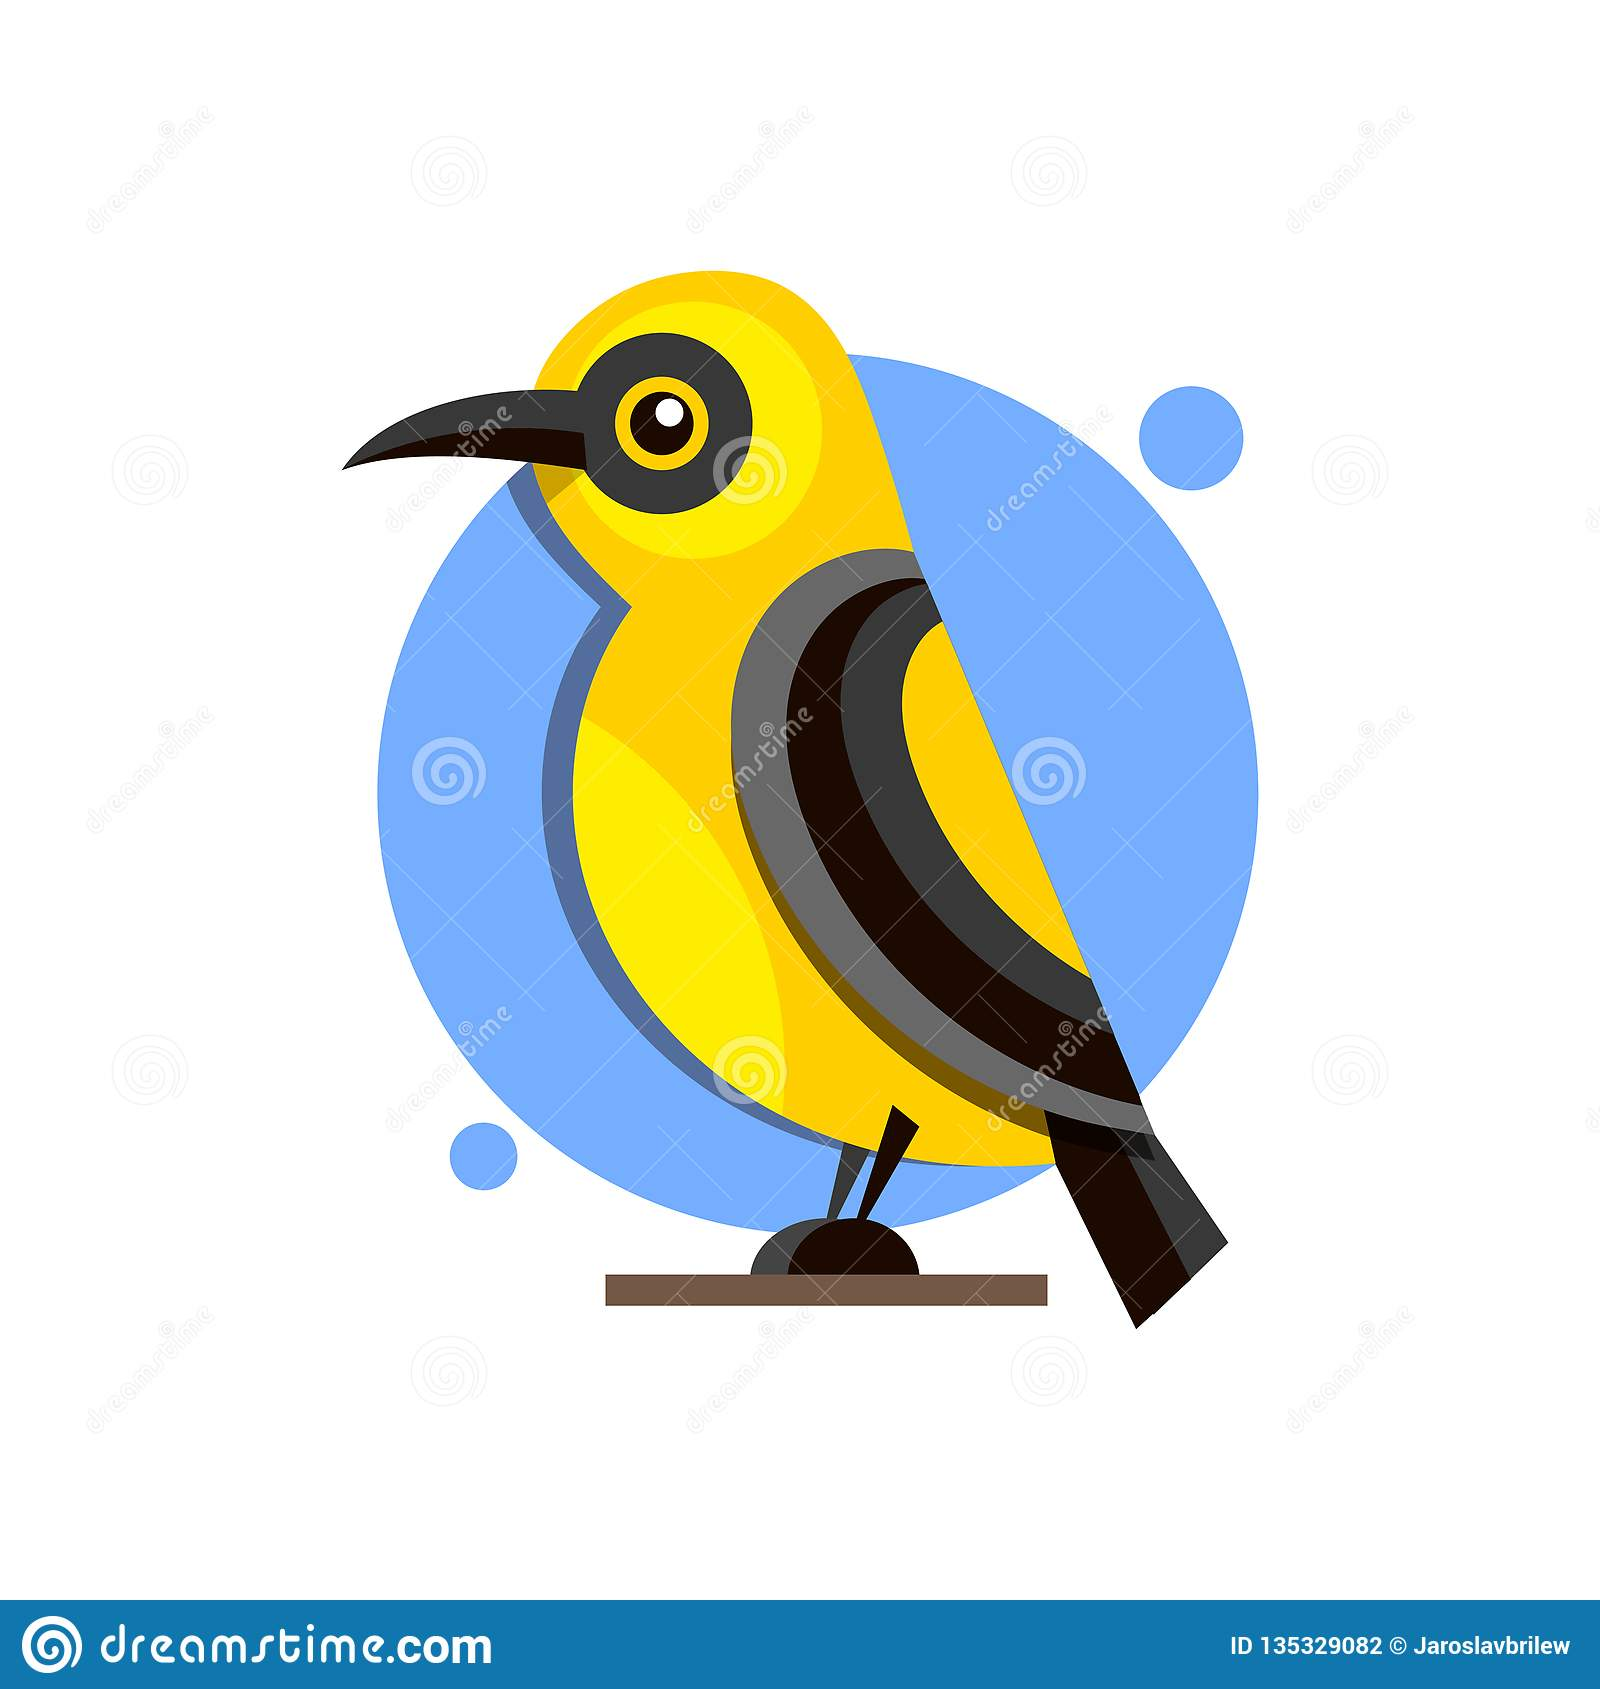 Bird Oriole on the branch flat style logo for design